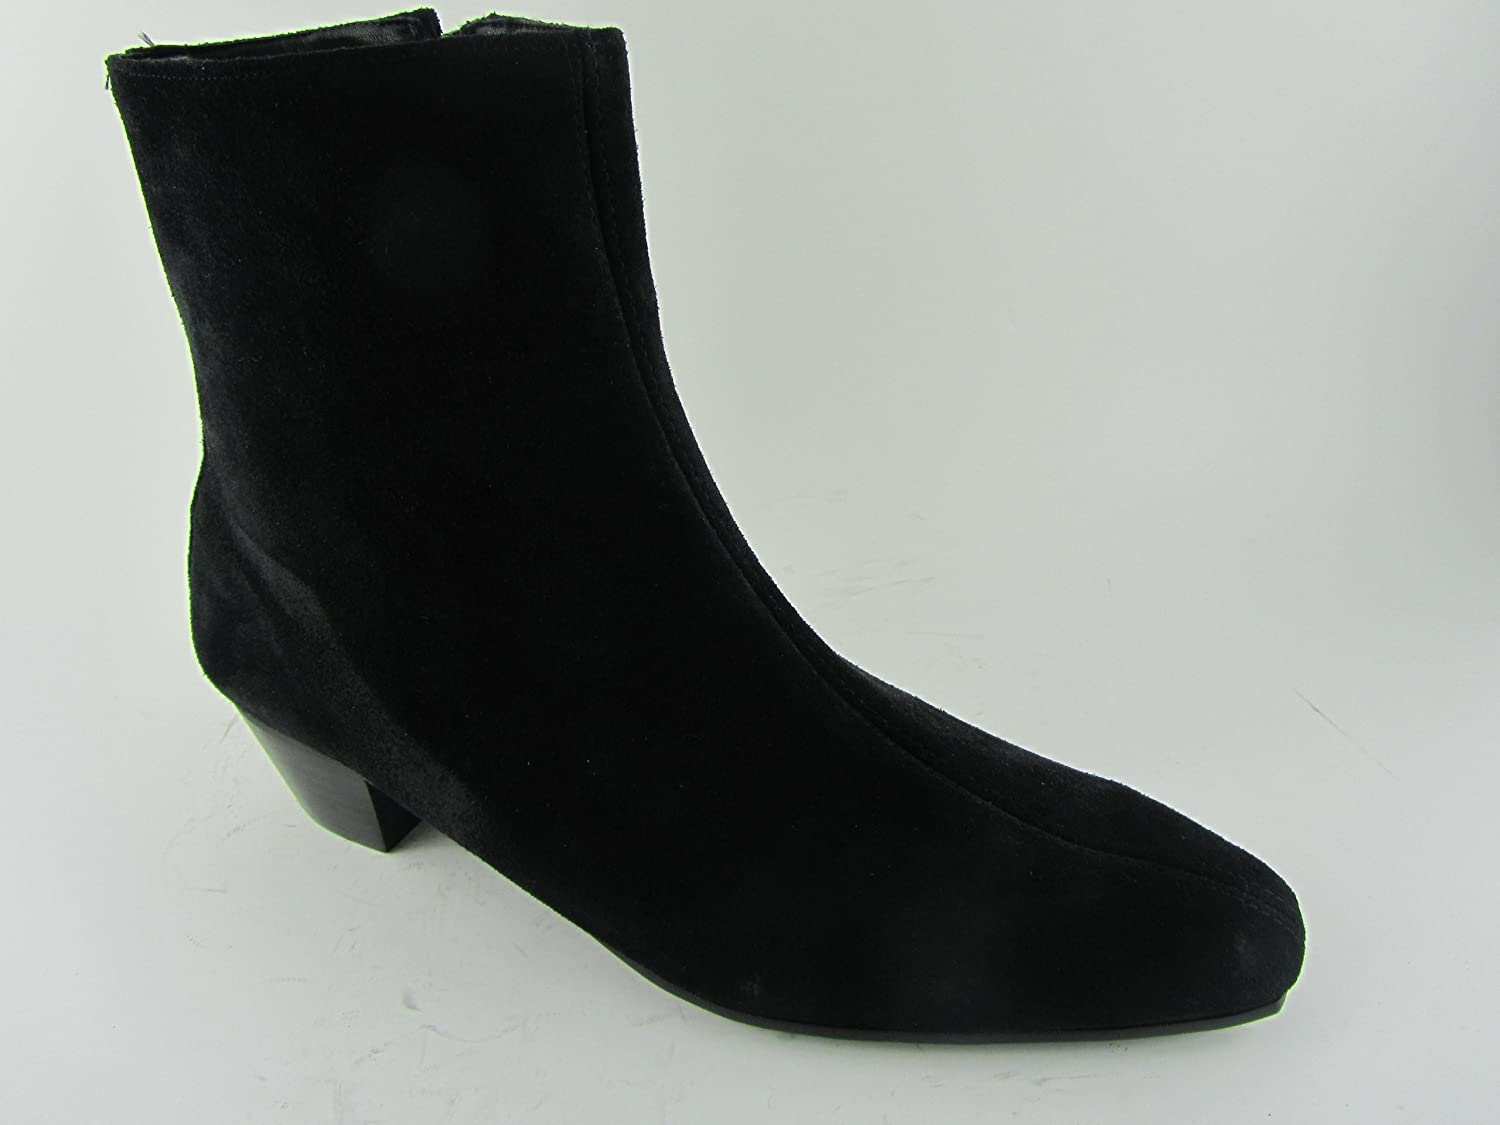 8fa557dafe5 Retro Mens LENNON Black Suede Zip Chelsea Beat Boots Cuban Heel Beatle  Original (UK 9   EU 43)  Amazon.co.uk  Shoes   Bags